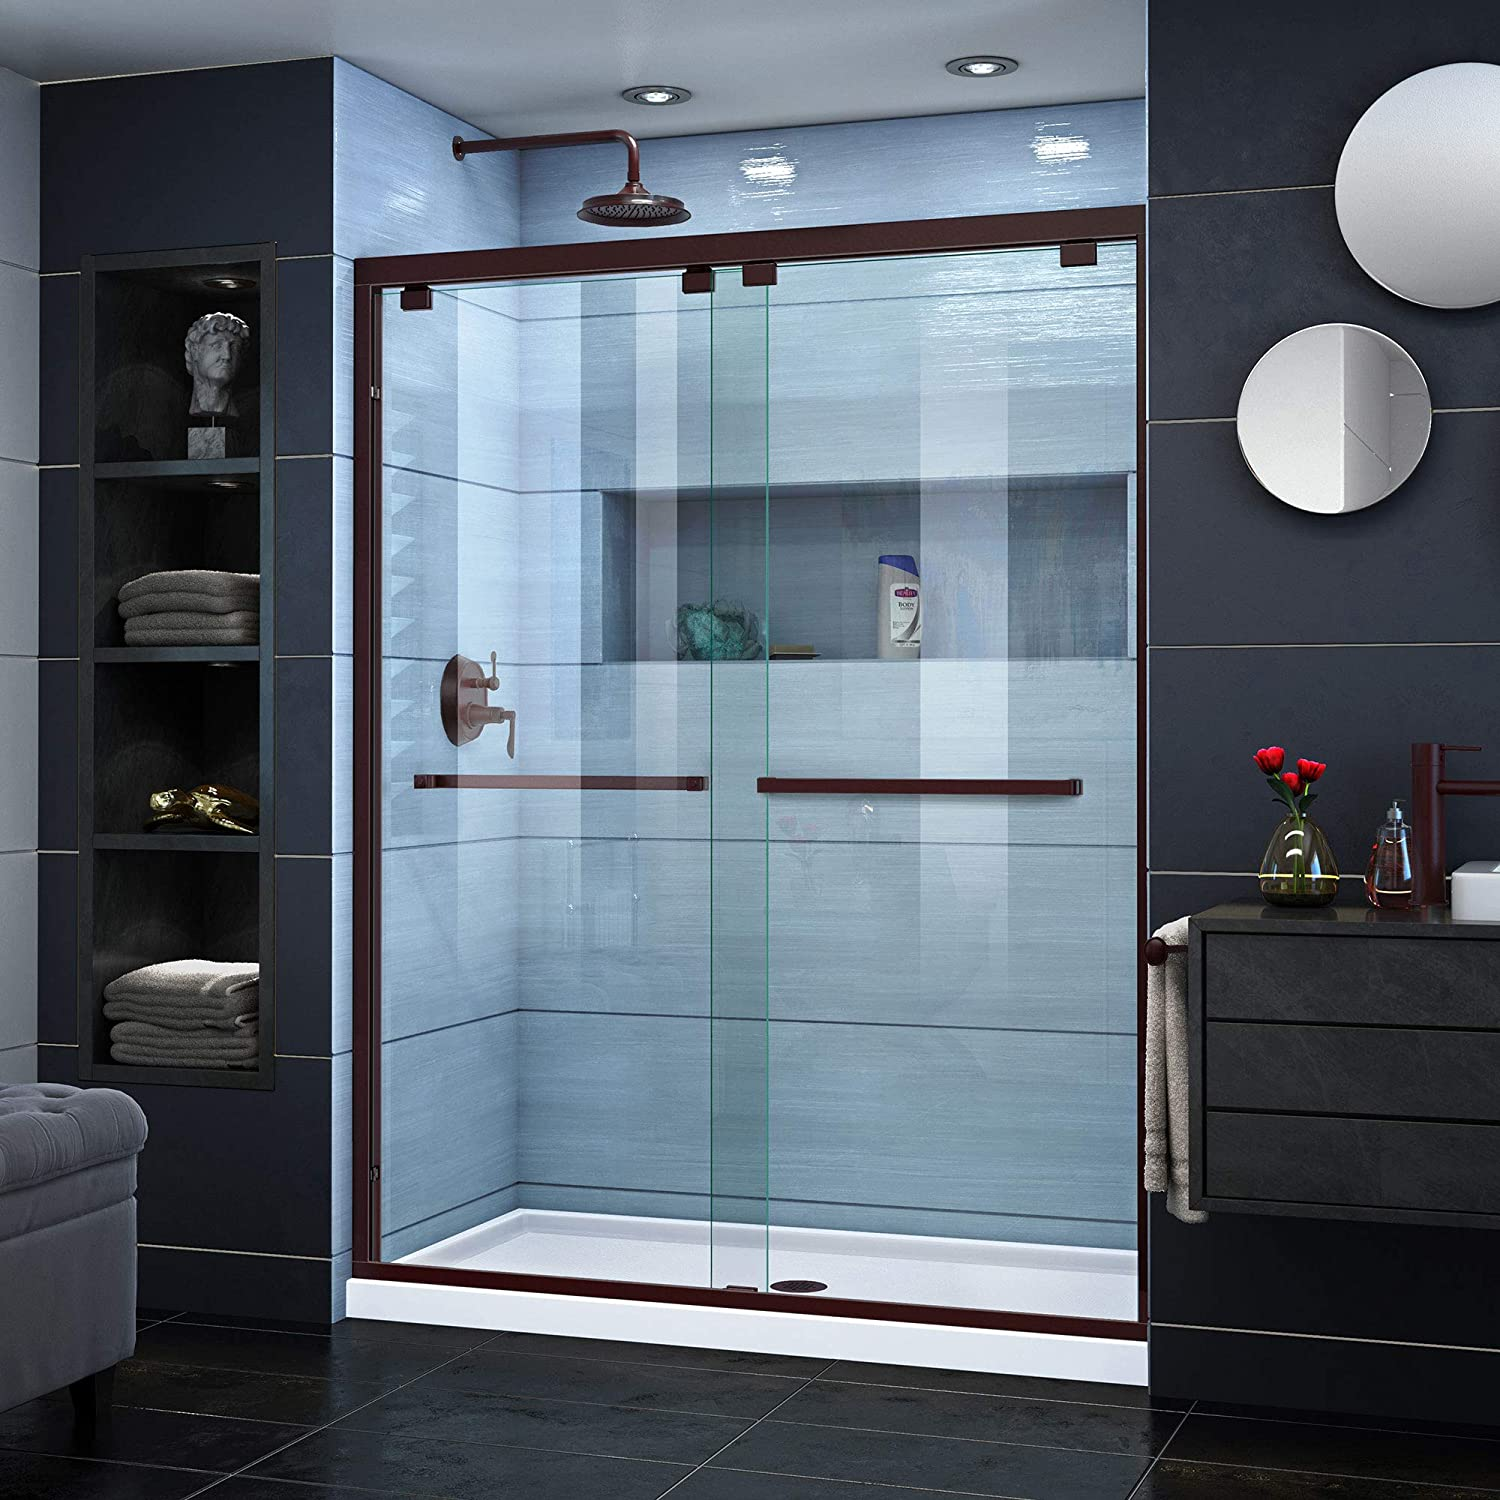 DreamLine Encore 50-54 in. W x 76 in. H Frameless Semi-Frameless Bypass Shower Door in Oil Rubbed Bronze, SHDR-1654760-06